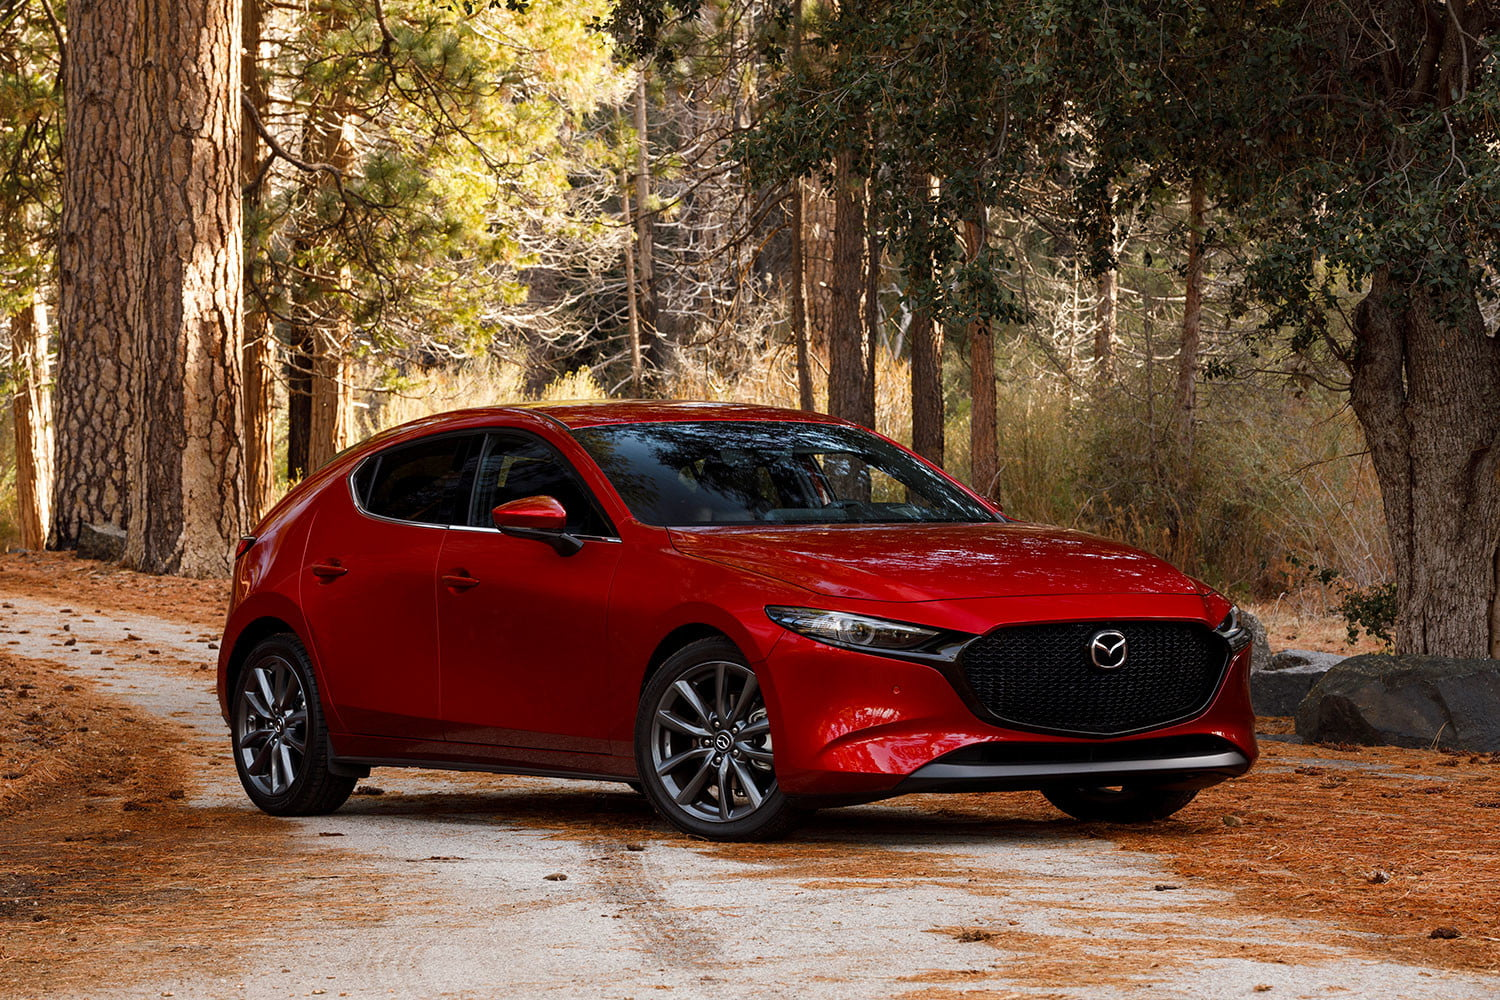 2019 Mazda3 AWD First Drive Review: The Acid Test For Mazda